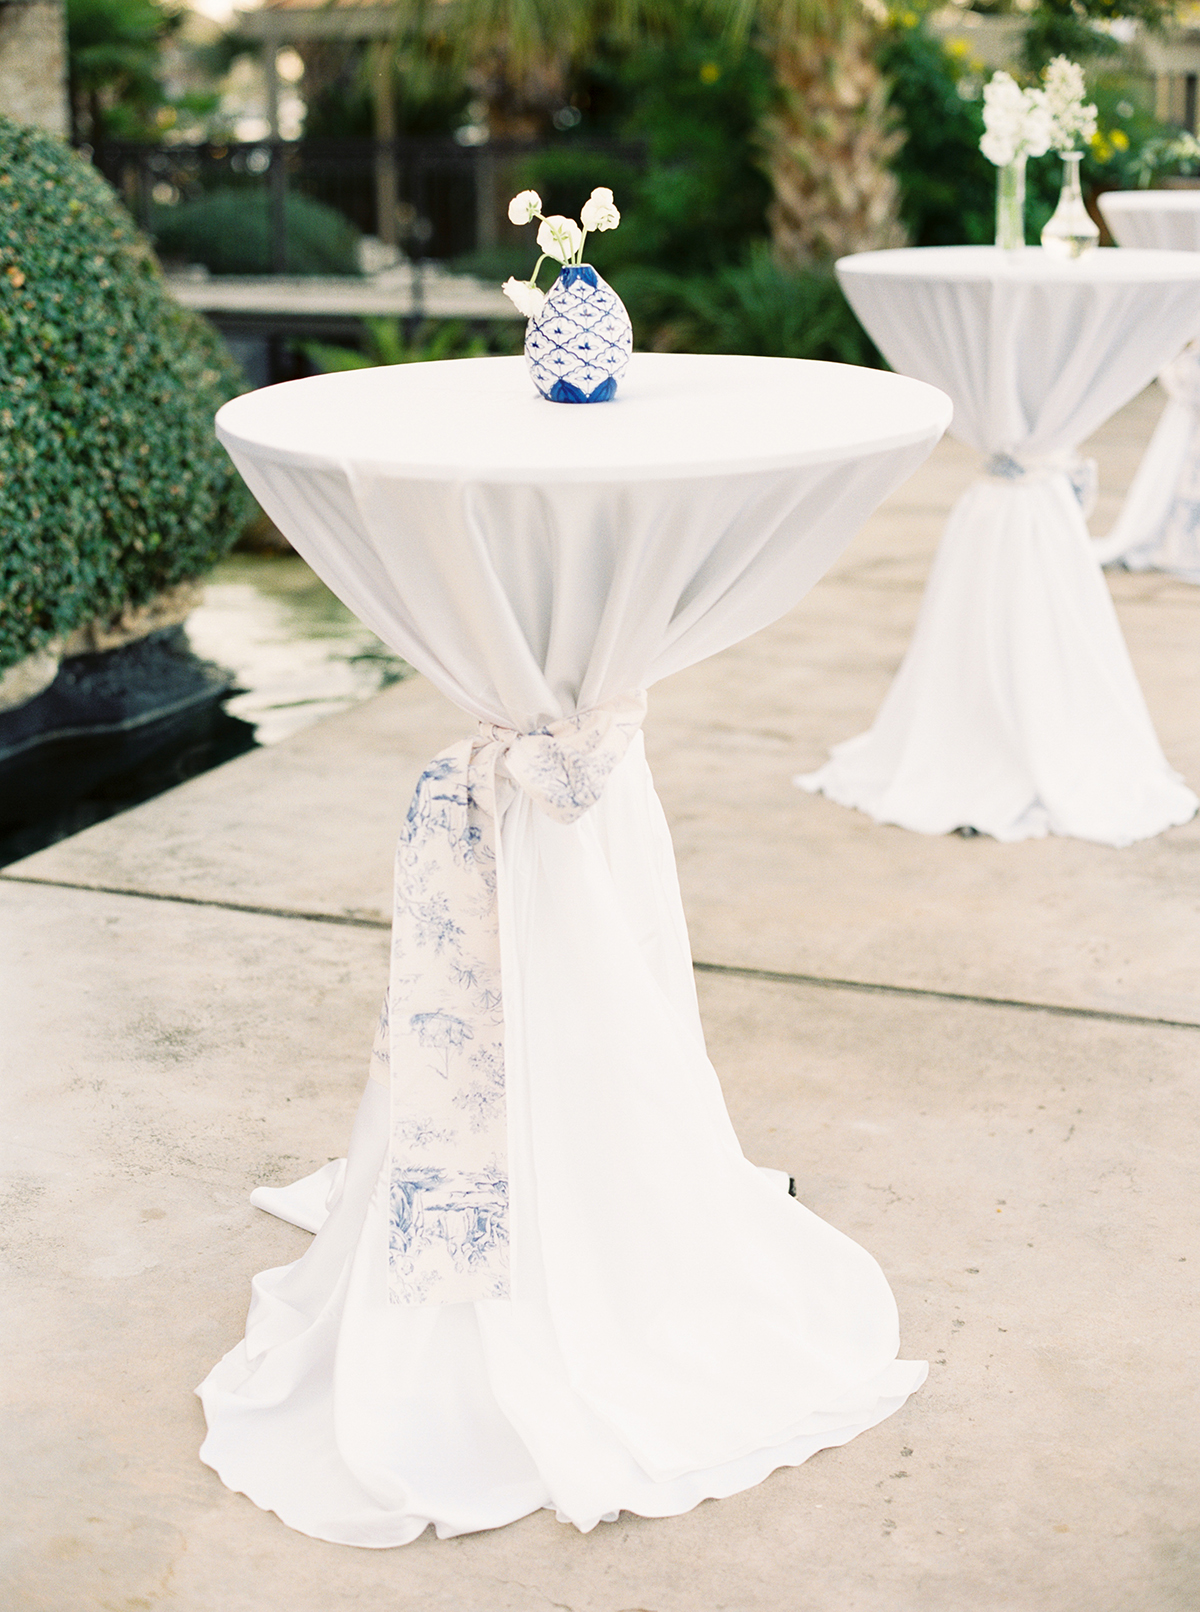 Wedding Cocktail Tables With Toile Linens